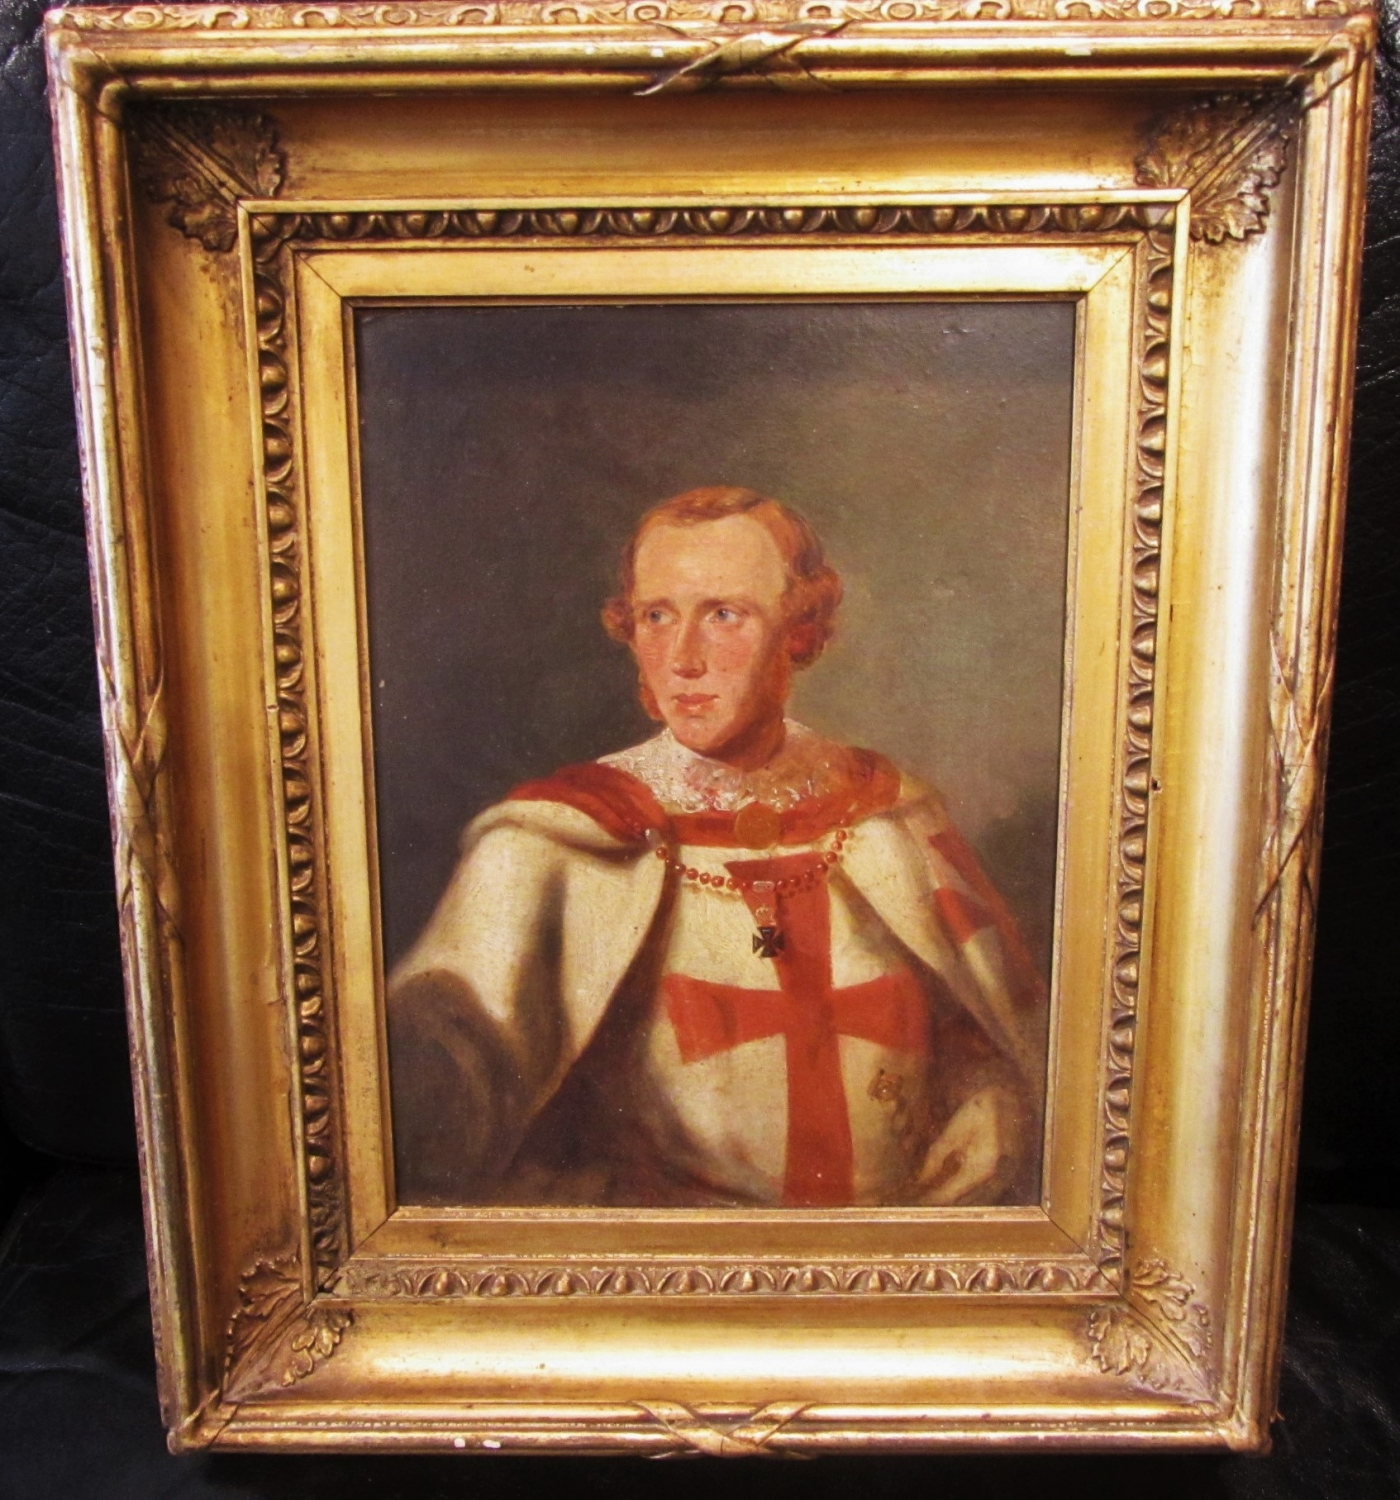 A19thC oil painting